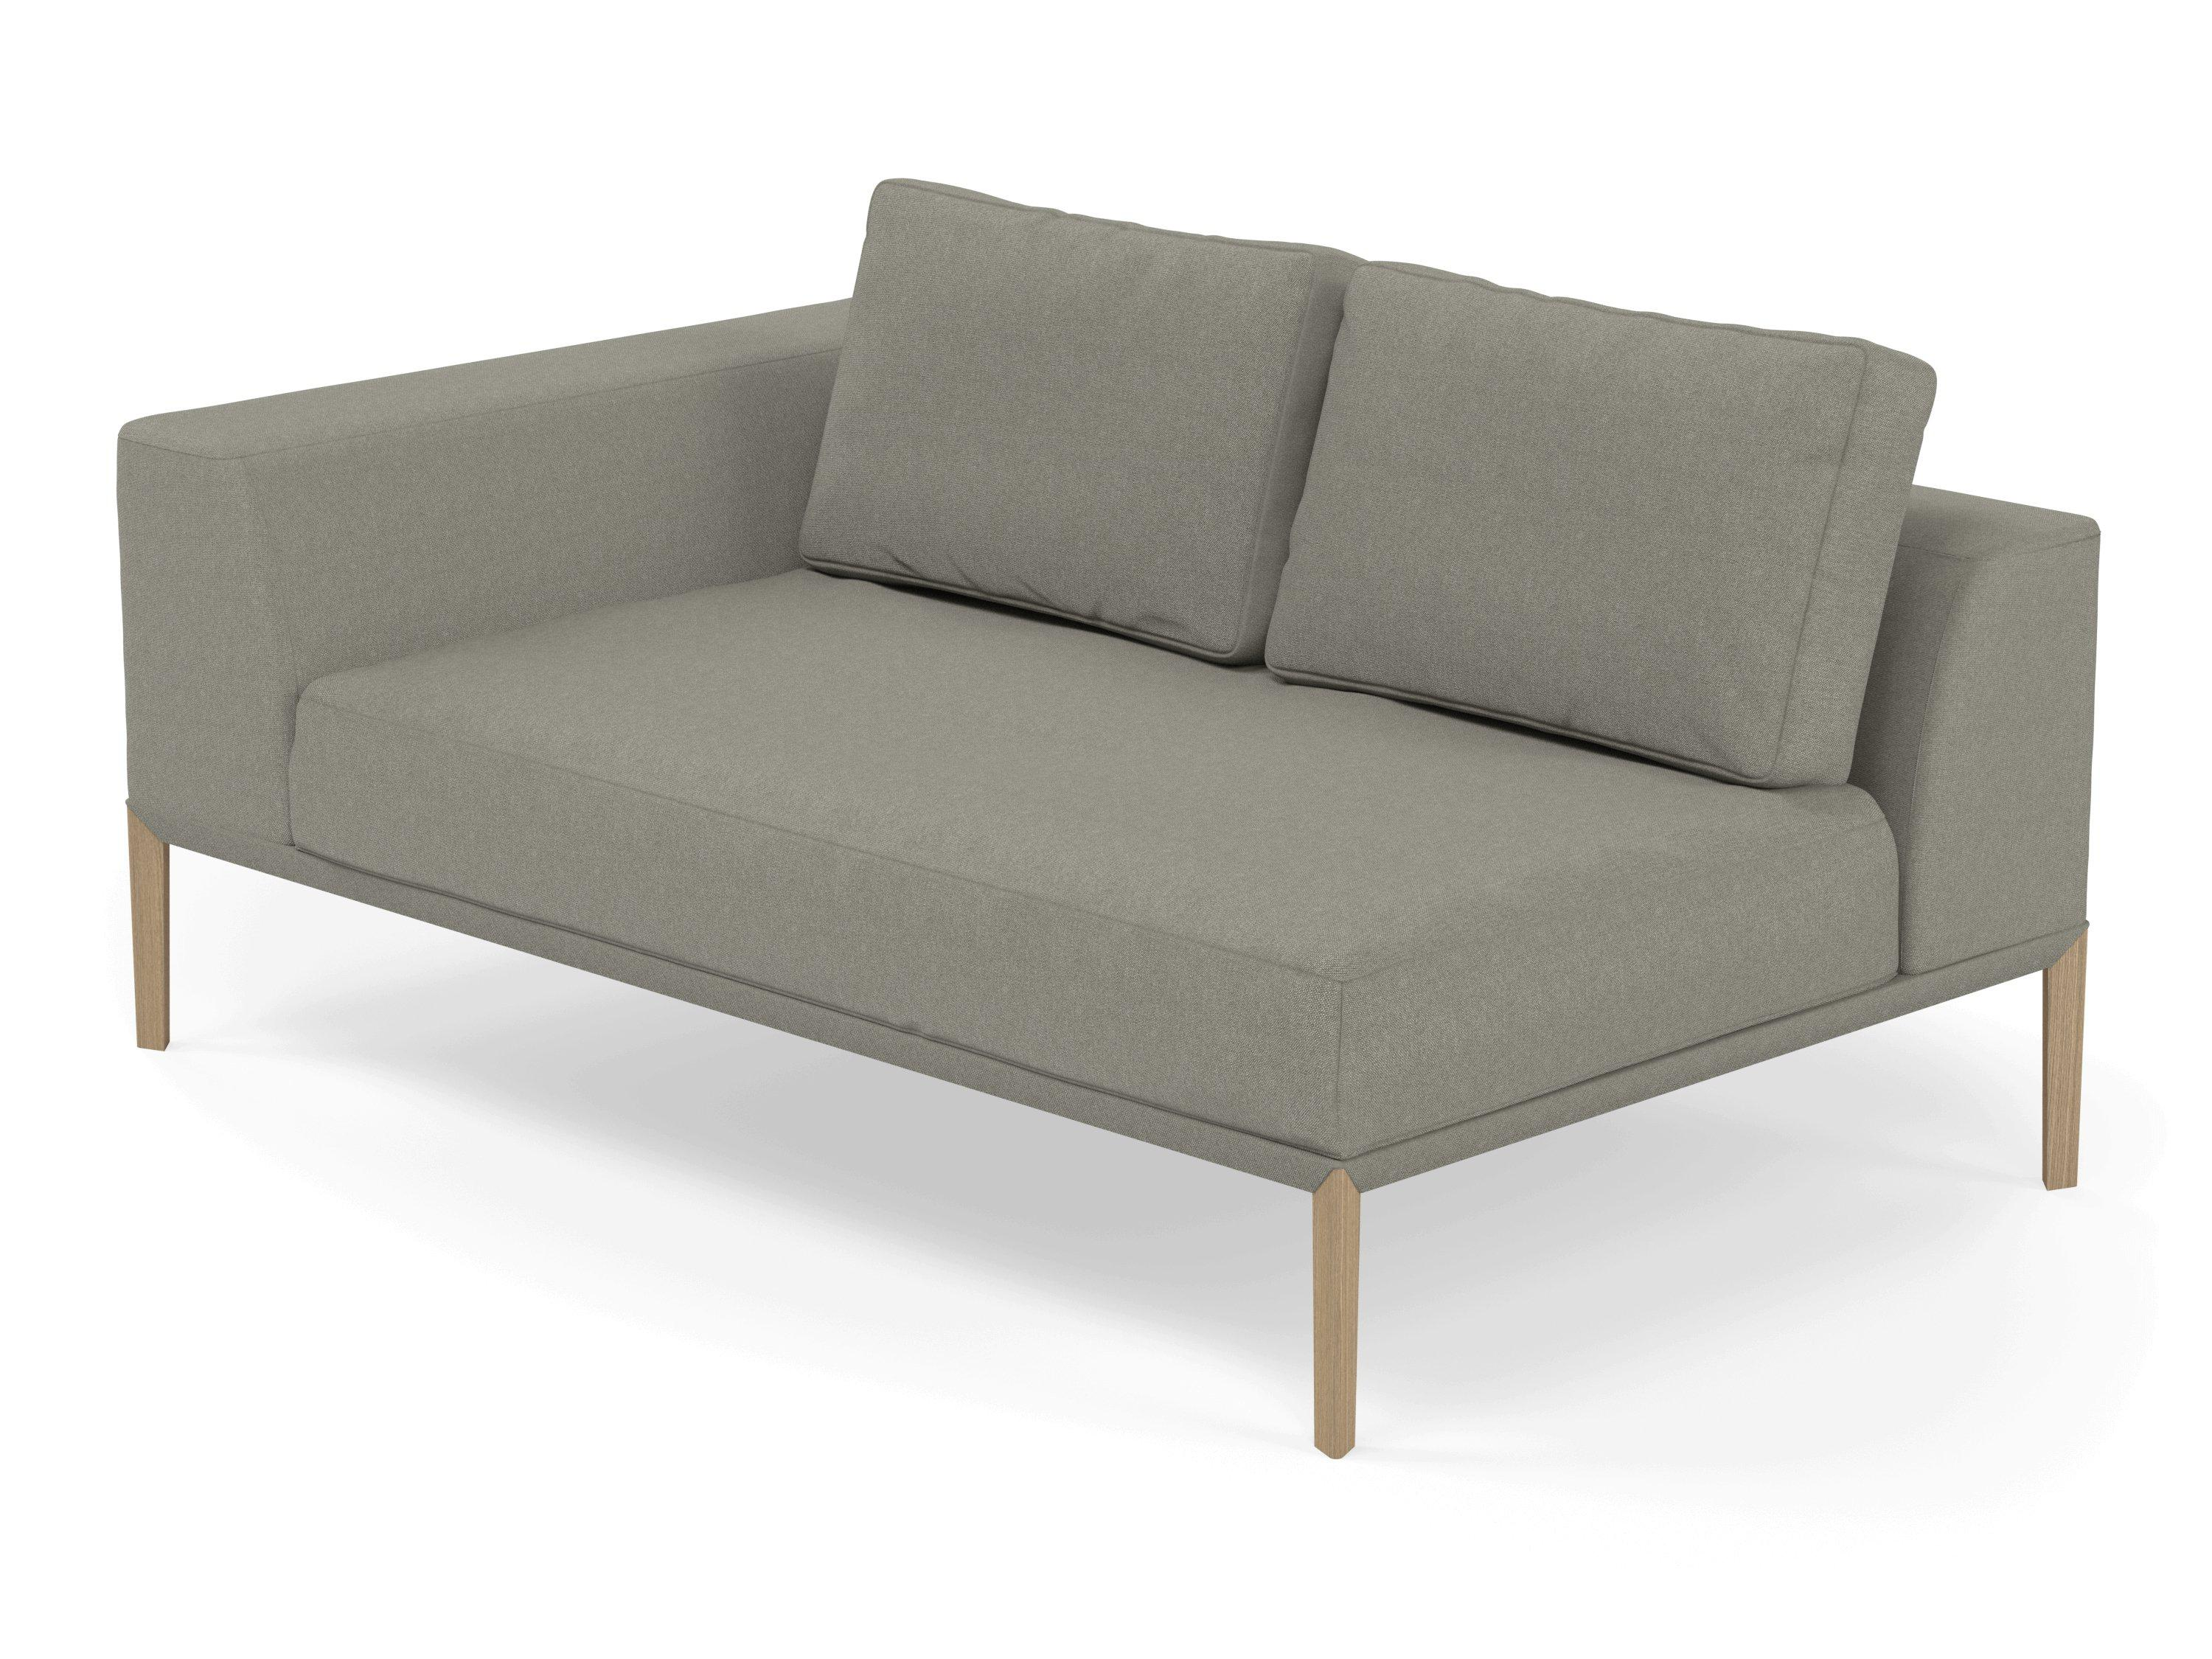 Modern 2 Seater Chaise Lounge Style Sofa with Right Armrest in Silver